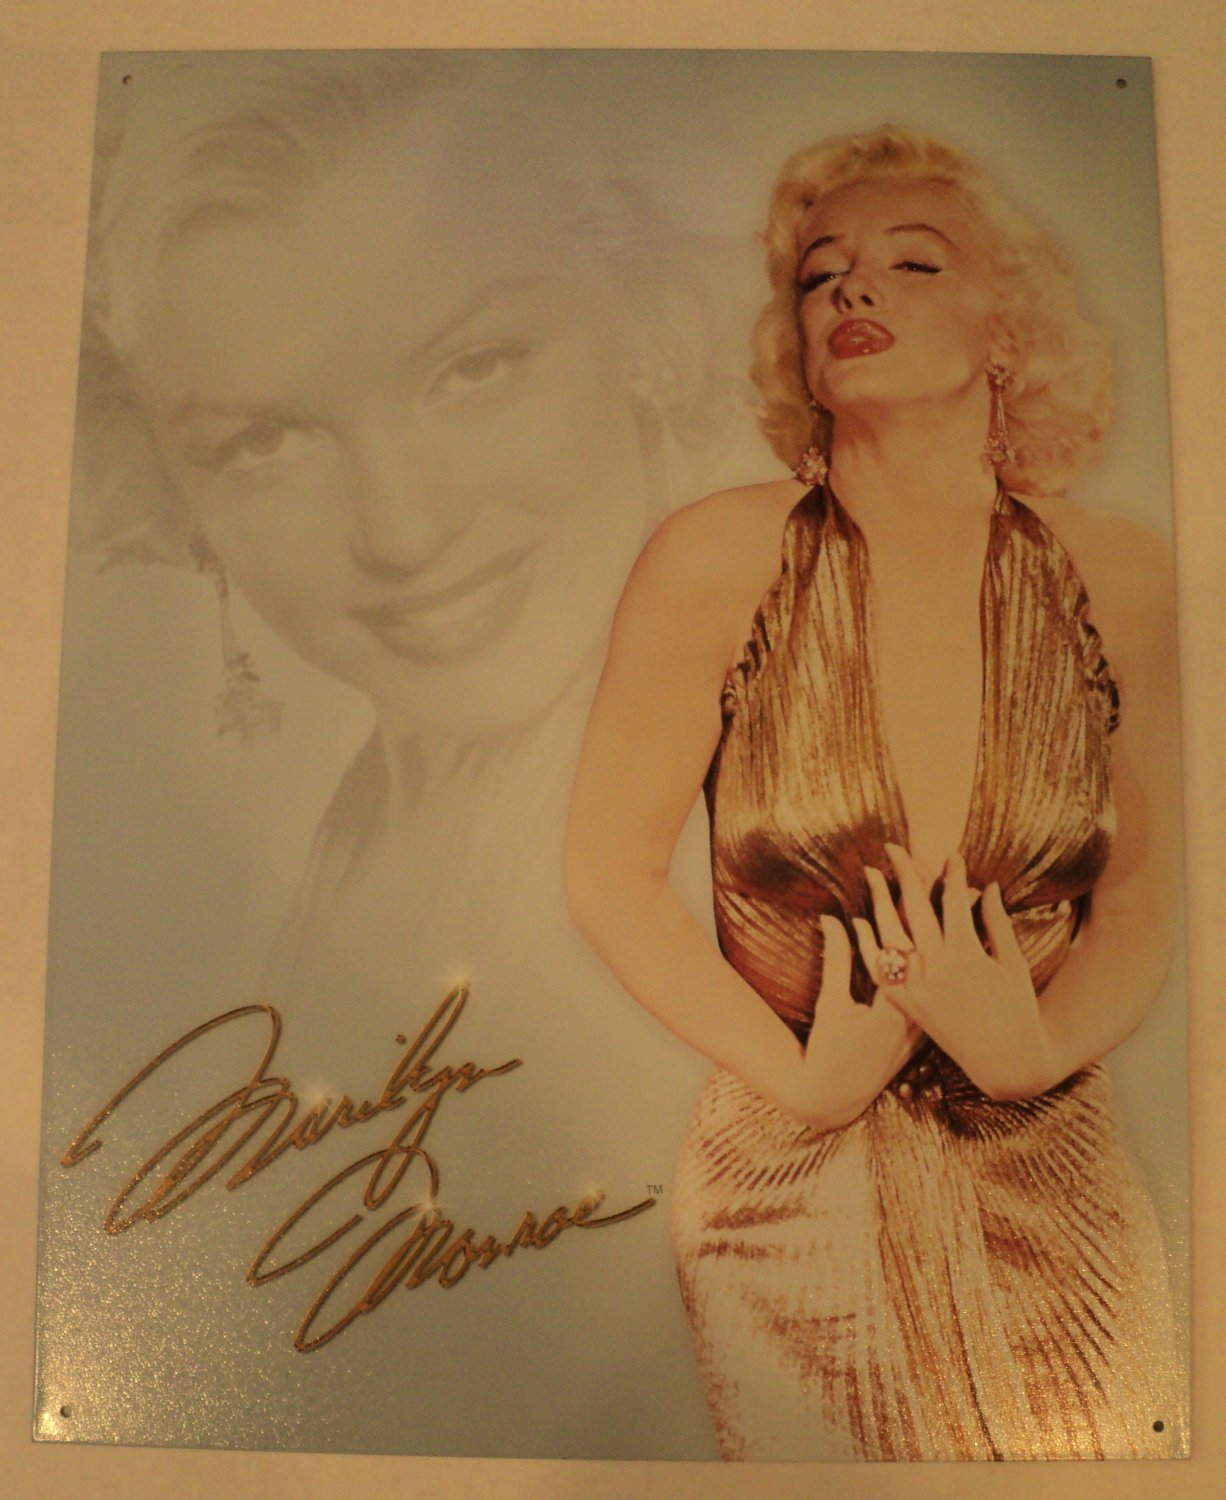 Marilyn Monroe metal sign $19.99 #1656